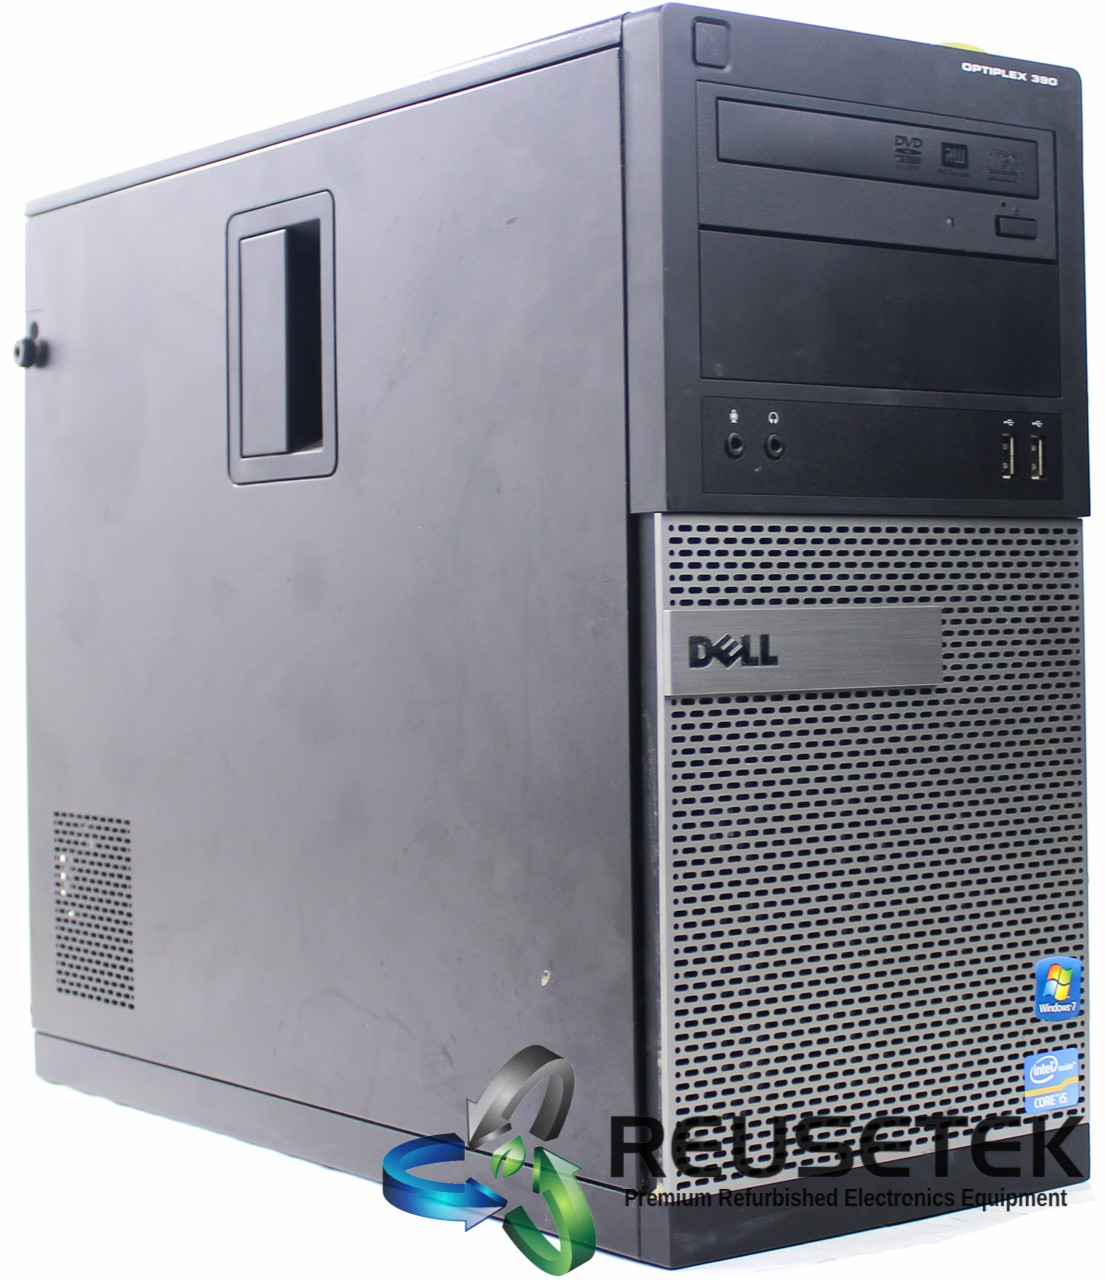 DELL-OPT-390-MT-i3-250GB-Dell OptiPlex 390 MT Intel Core i3 4 GB RAM 250 GB HDD Windows 10 Pro-image